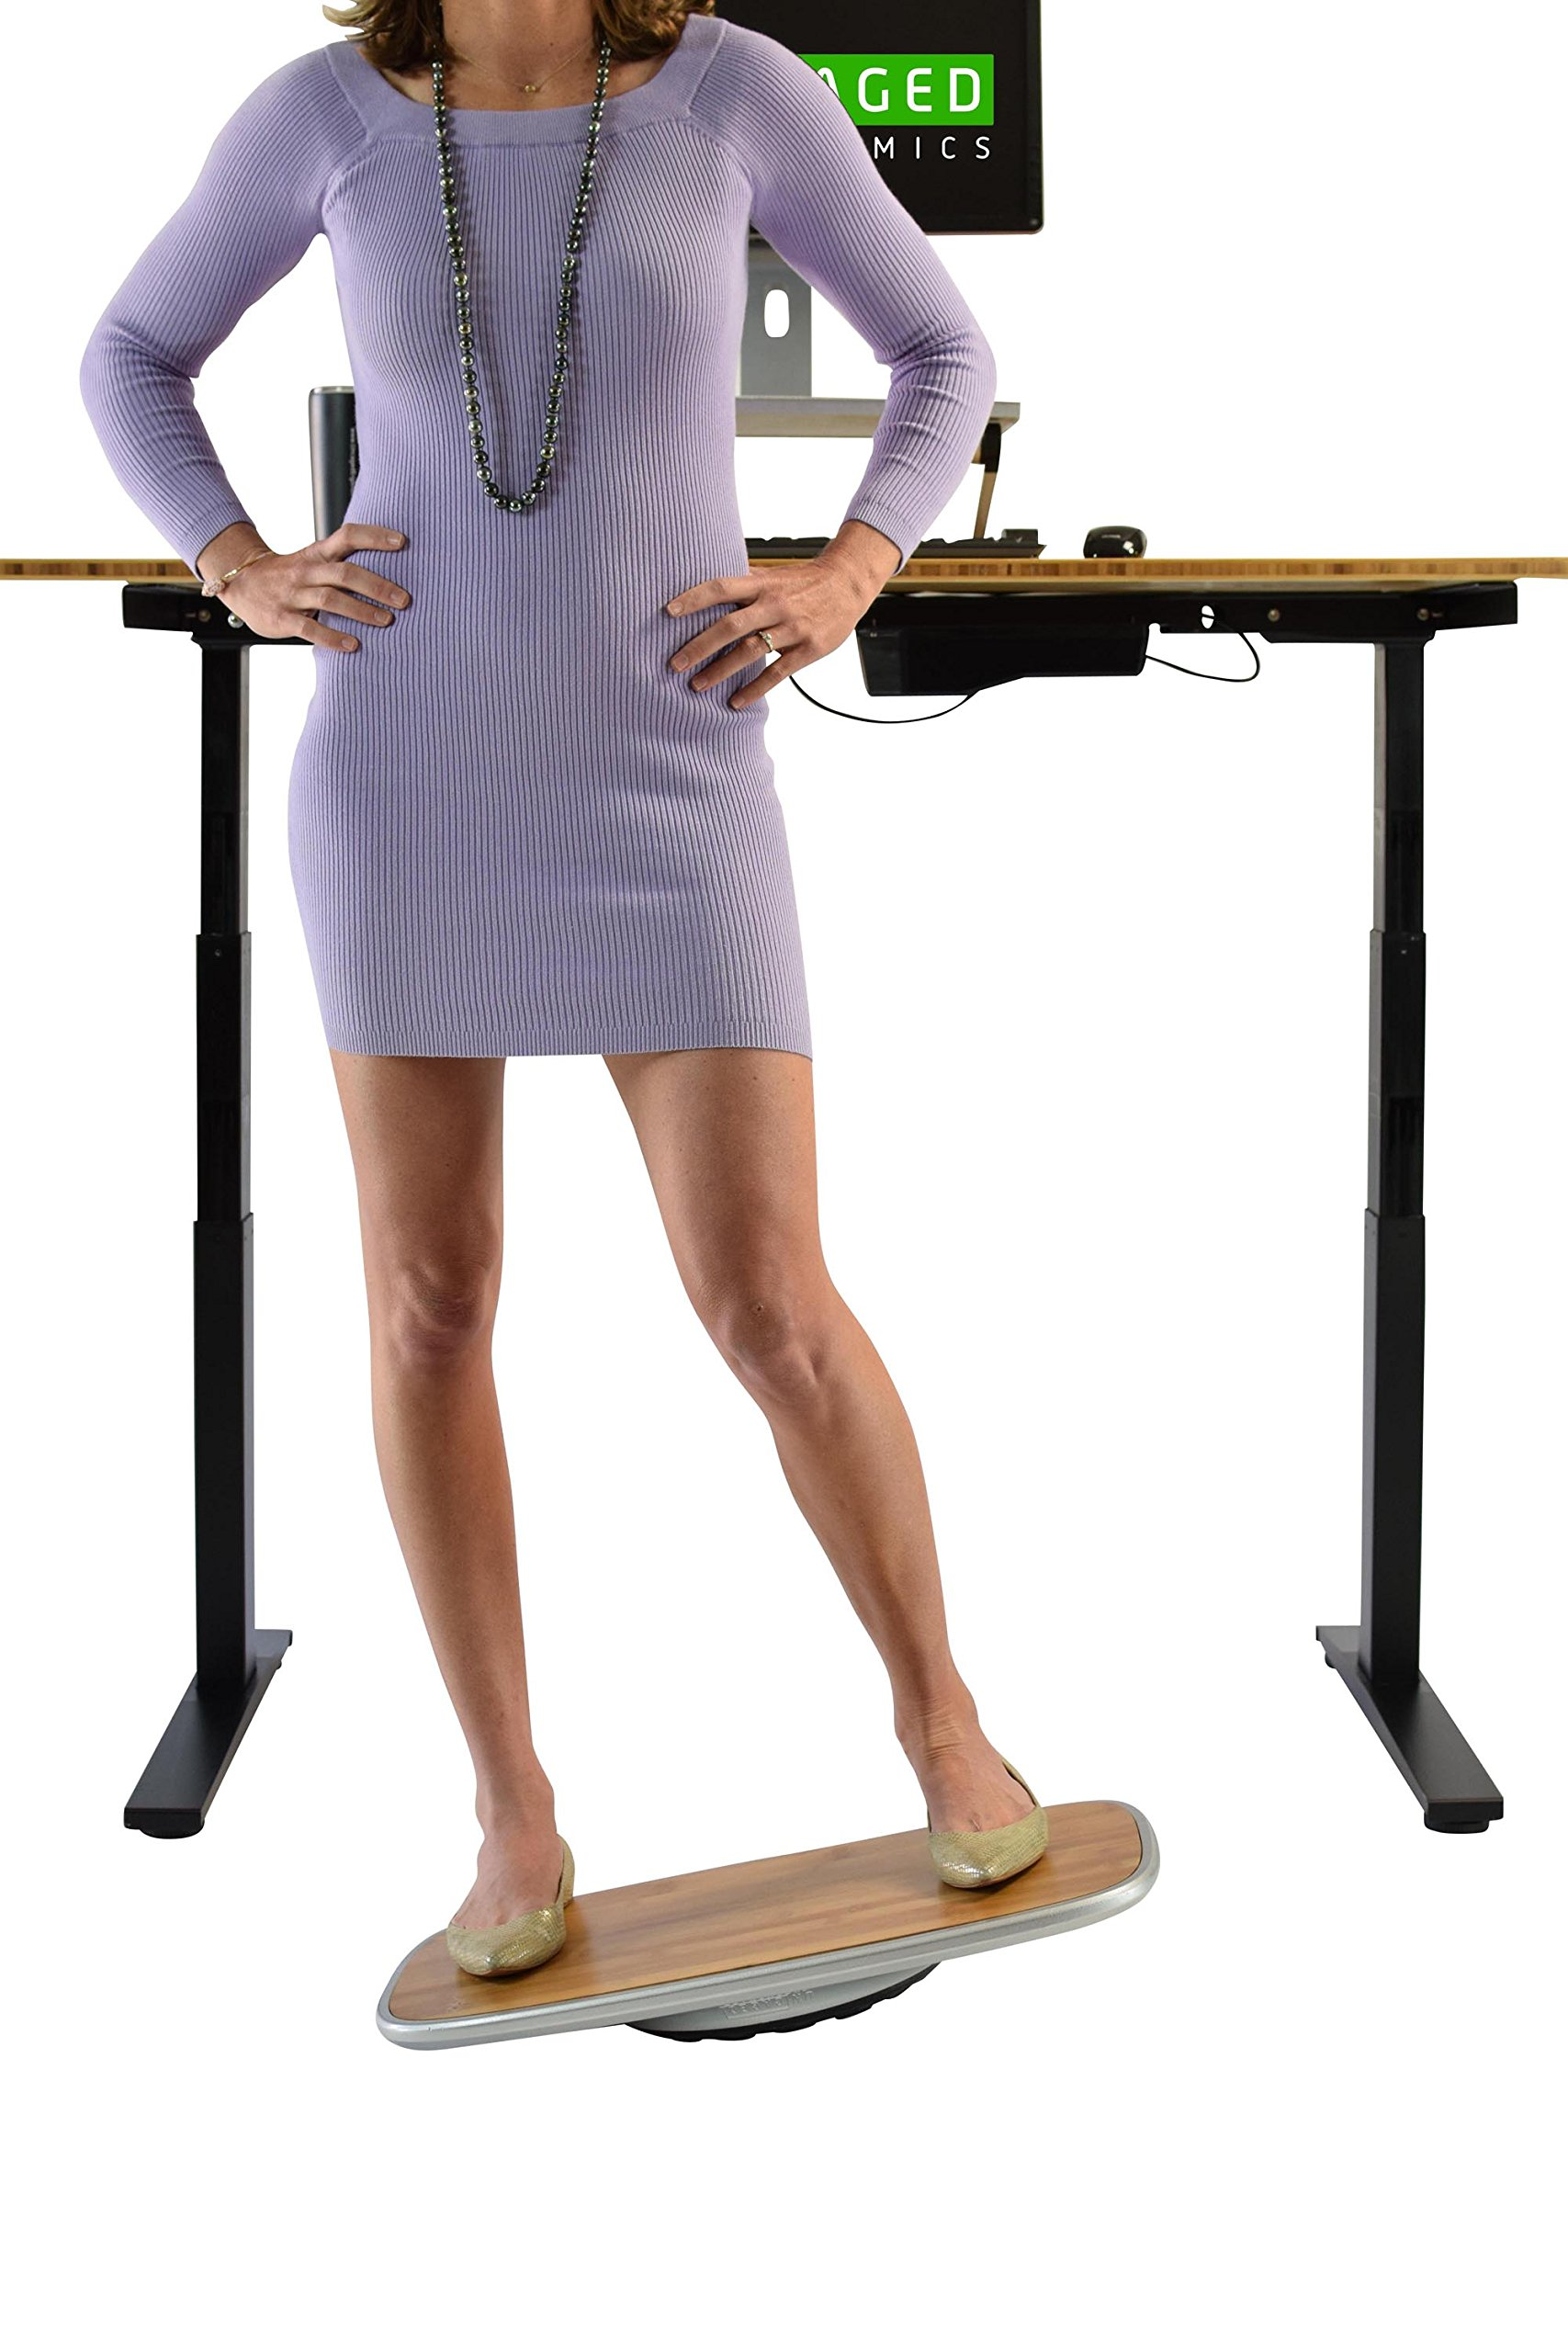 BASE Balance & Stability Board. Active Standing Desk Wobble Platform Trainer for Home, Office, Rehab, Fitness. Full Range of Motion. Patented by Uncaged Ergonomics (Image #3)